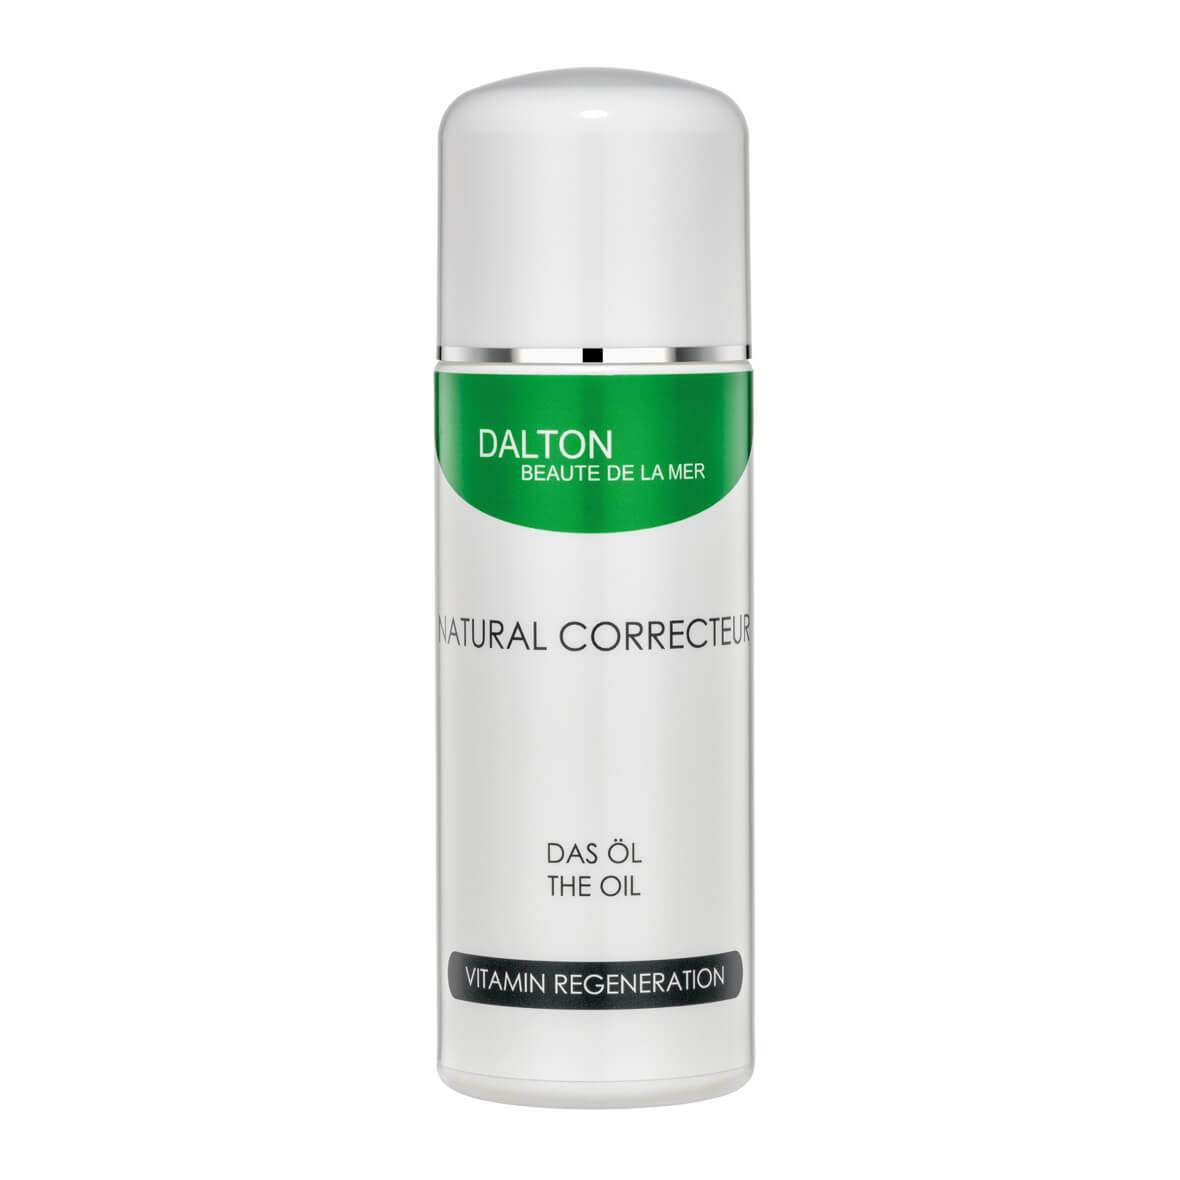 Ulei corp, Natural Correcteur The Oil 200 ml., Dalton Marine Cosmetics, Era Cosmetics